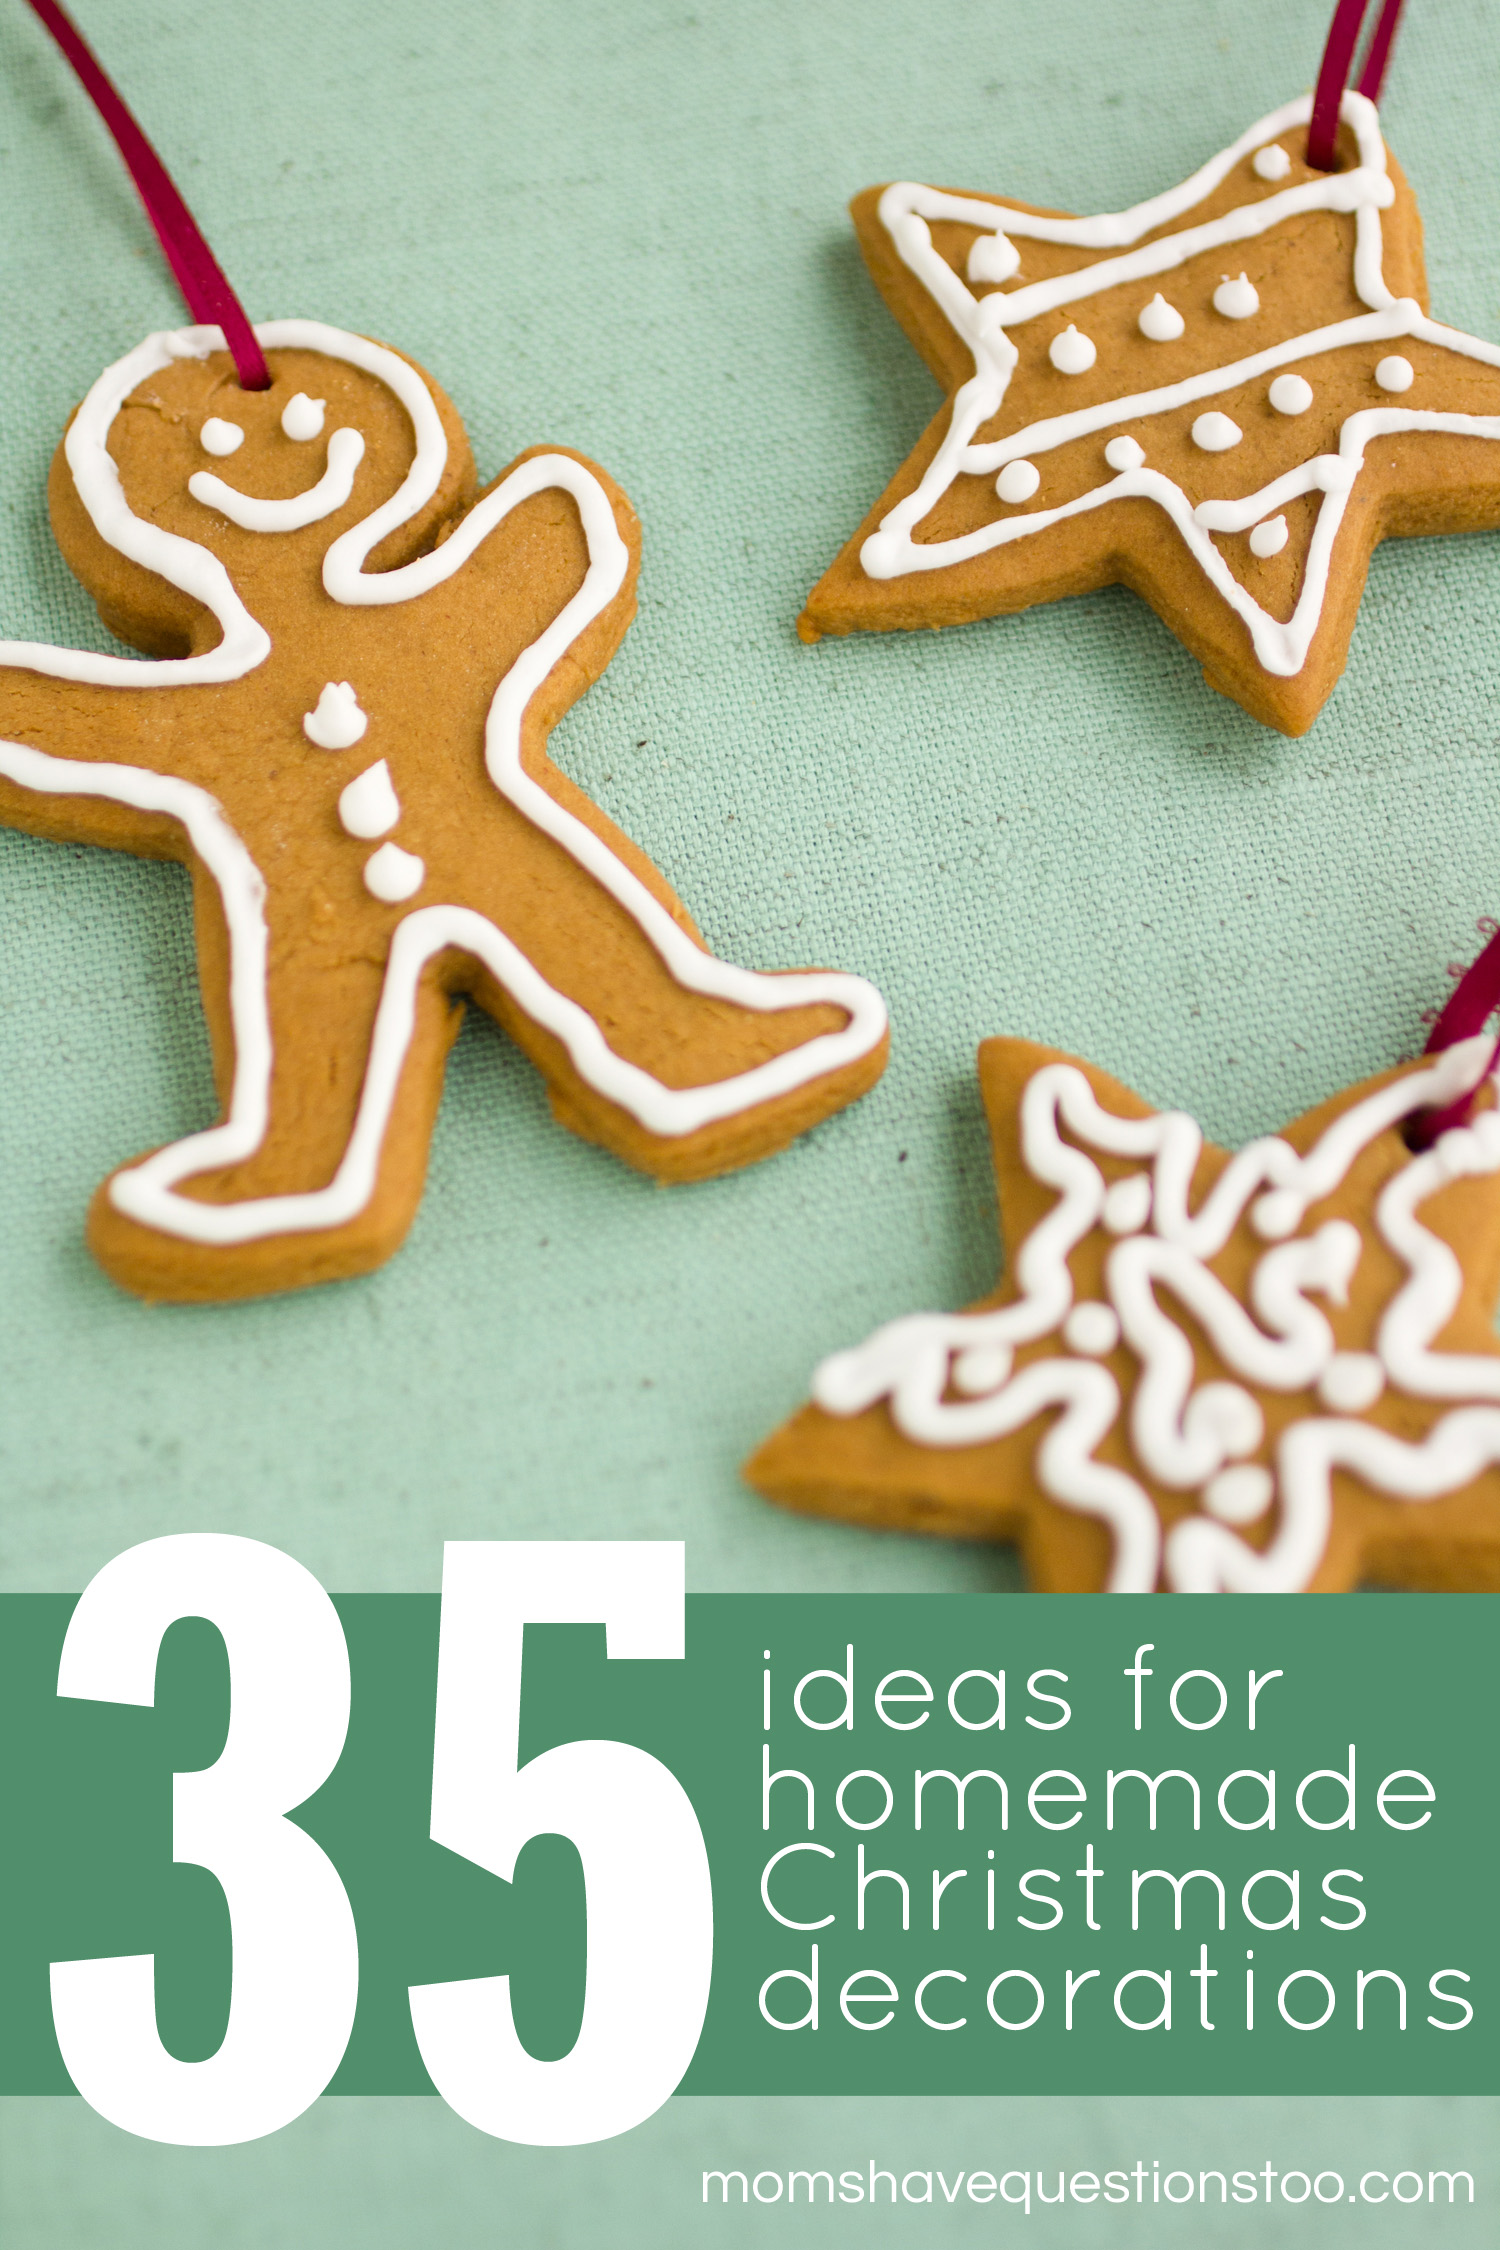 35 Homemade Christmas Decorations -- Moms Have Questions Too